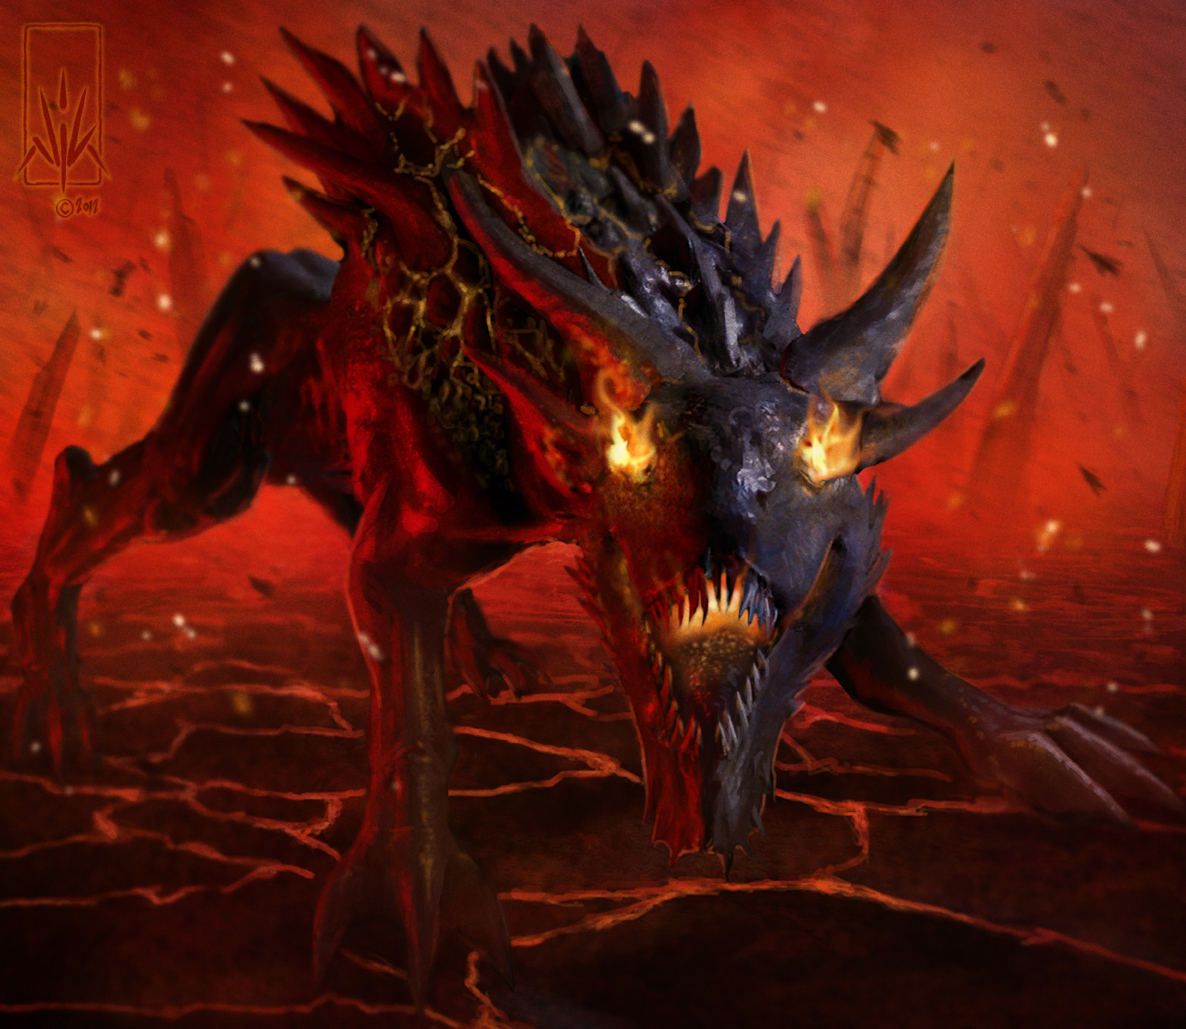 Best 55 Hellhound Wallpaper on HipWallpaper Hellhound Wallpaper 1186x1029